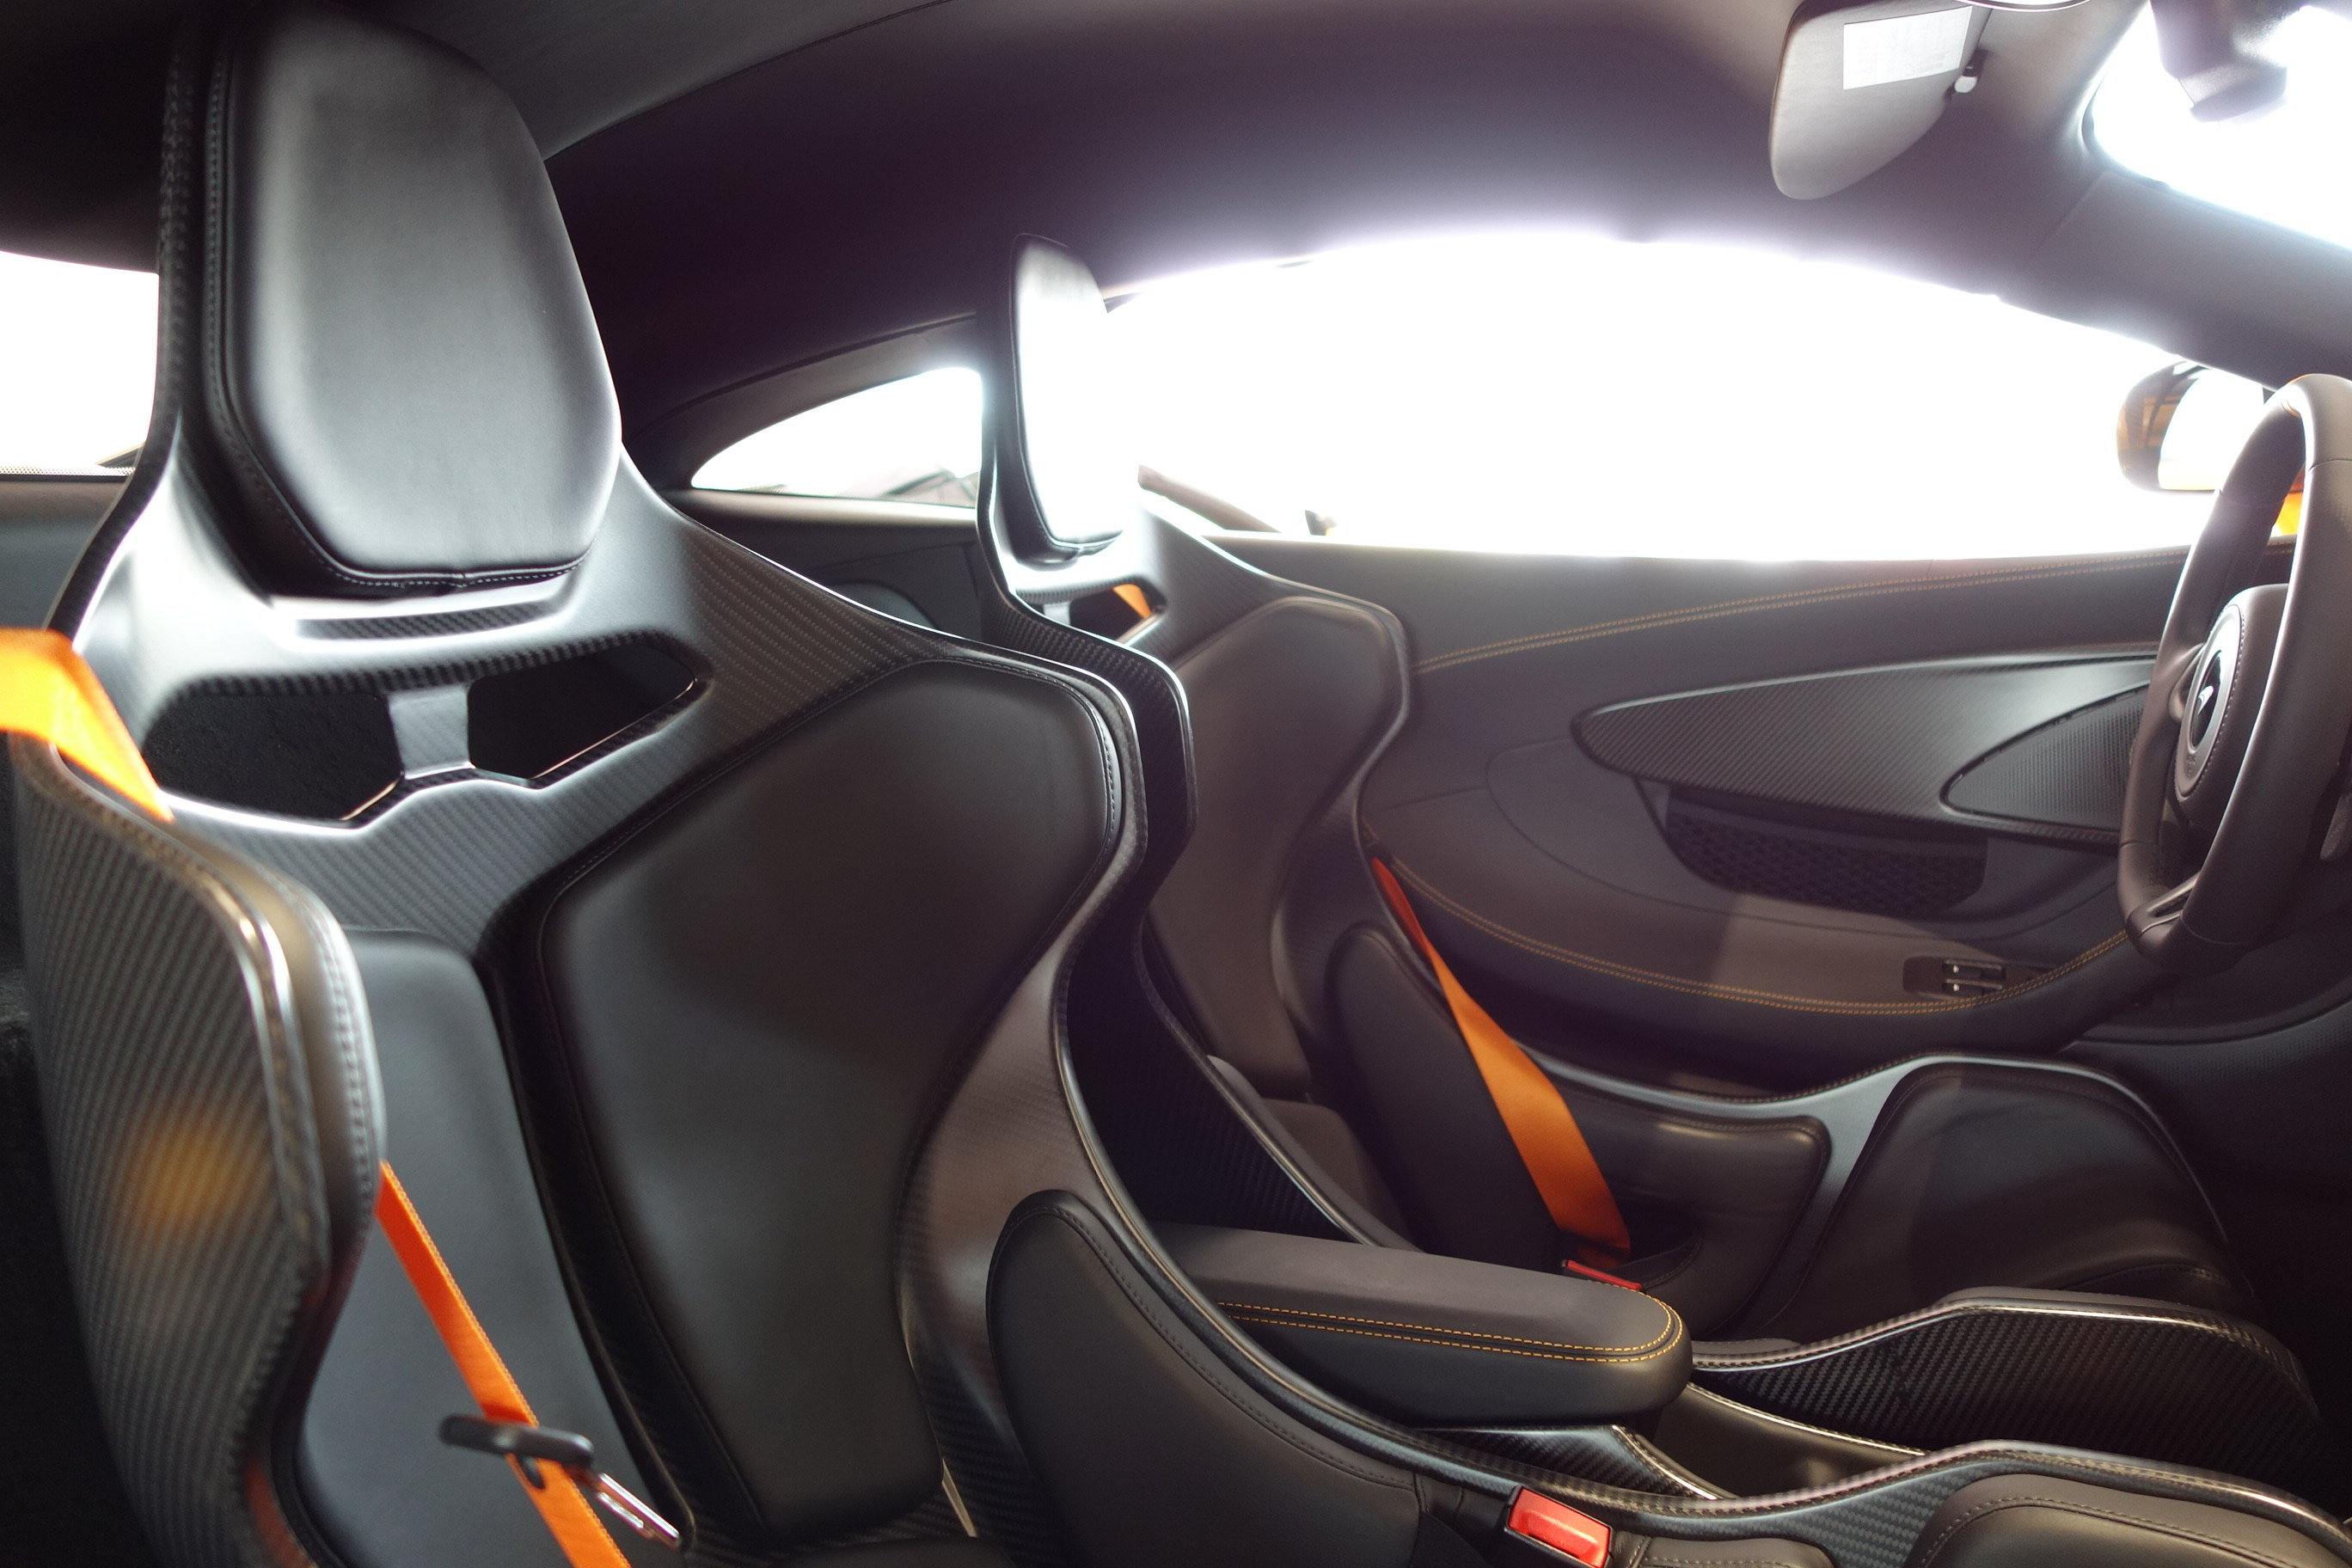 2019 Papaya Spark McLaren 600LT 3.8L V8 Twin Turbocharged Engine Automatic Coupe